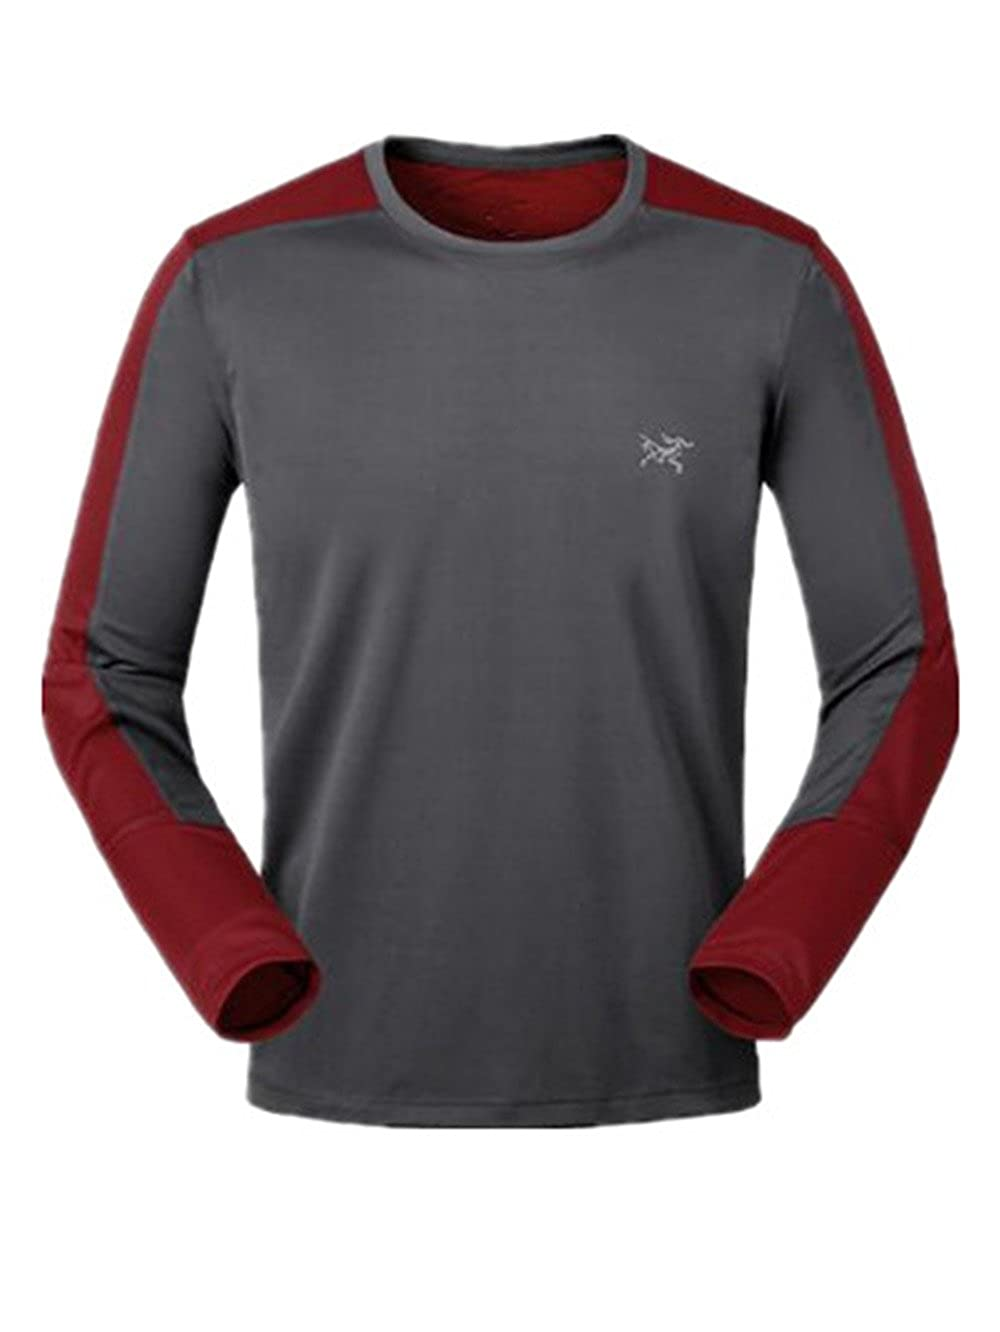 Gogofuture Mens Long Sleeve Tops Athletic Breathable Workout Moisture Wicking